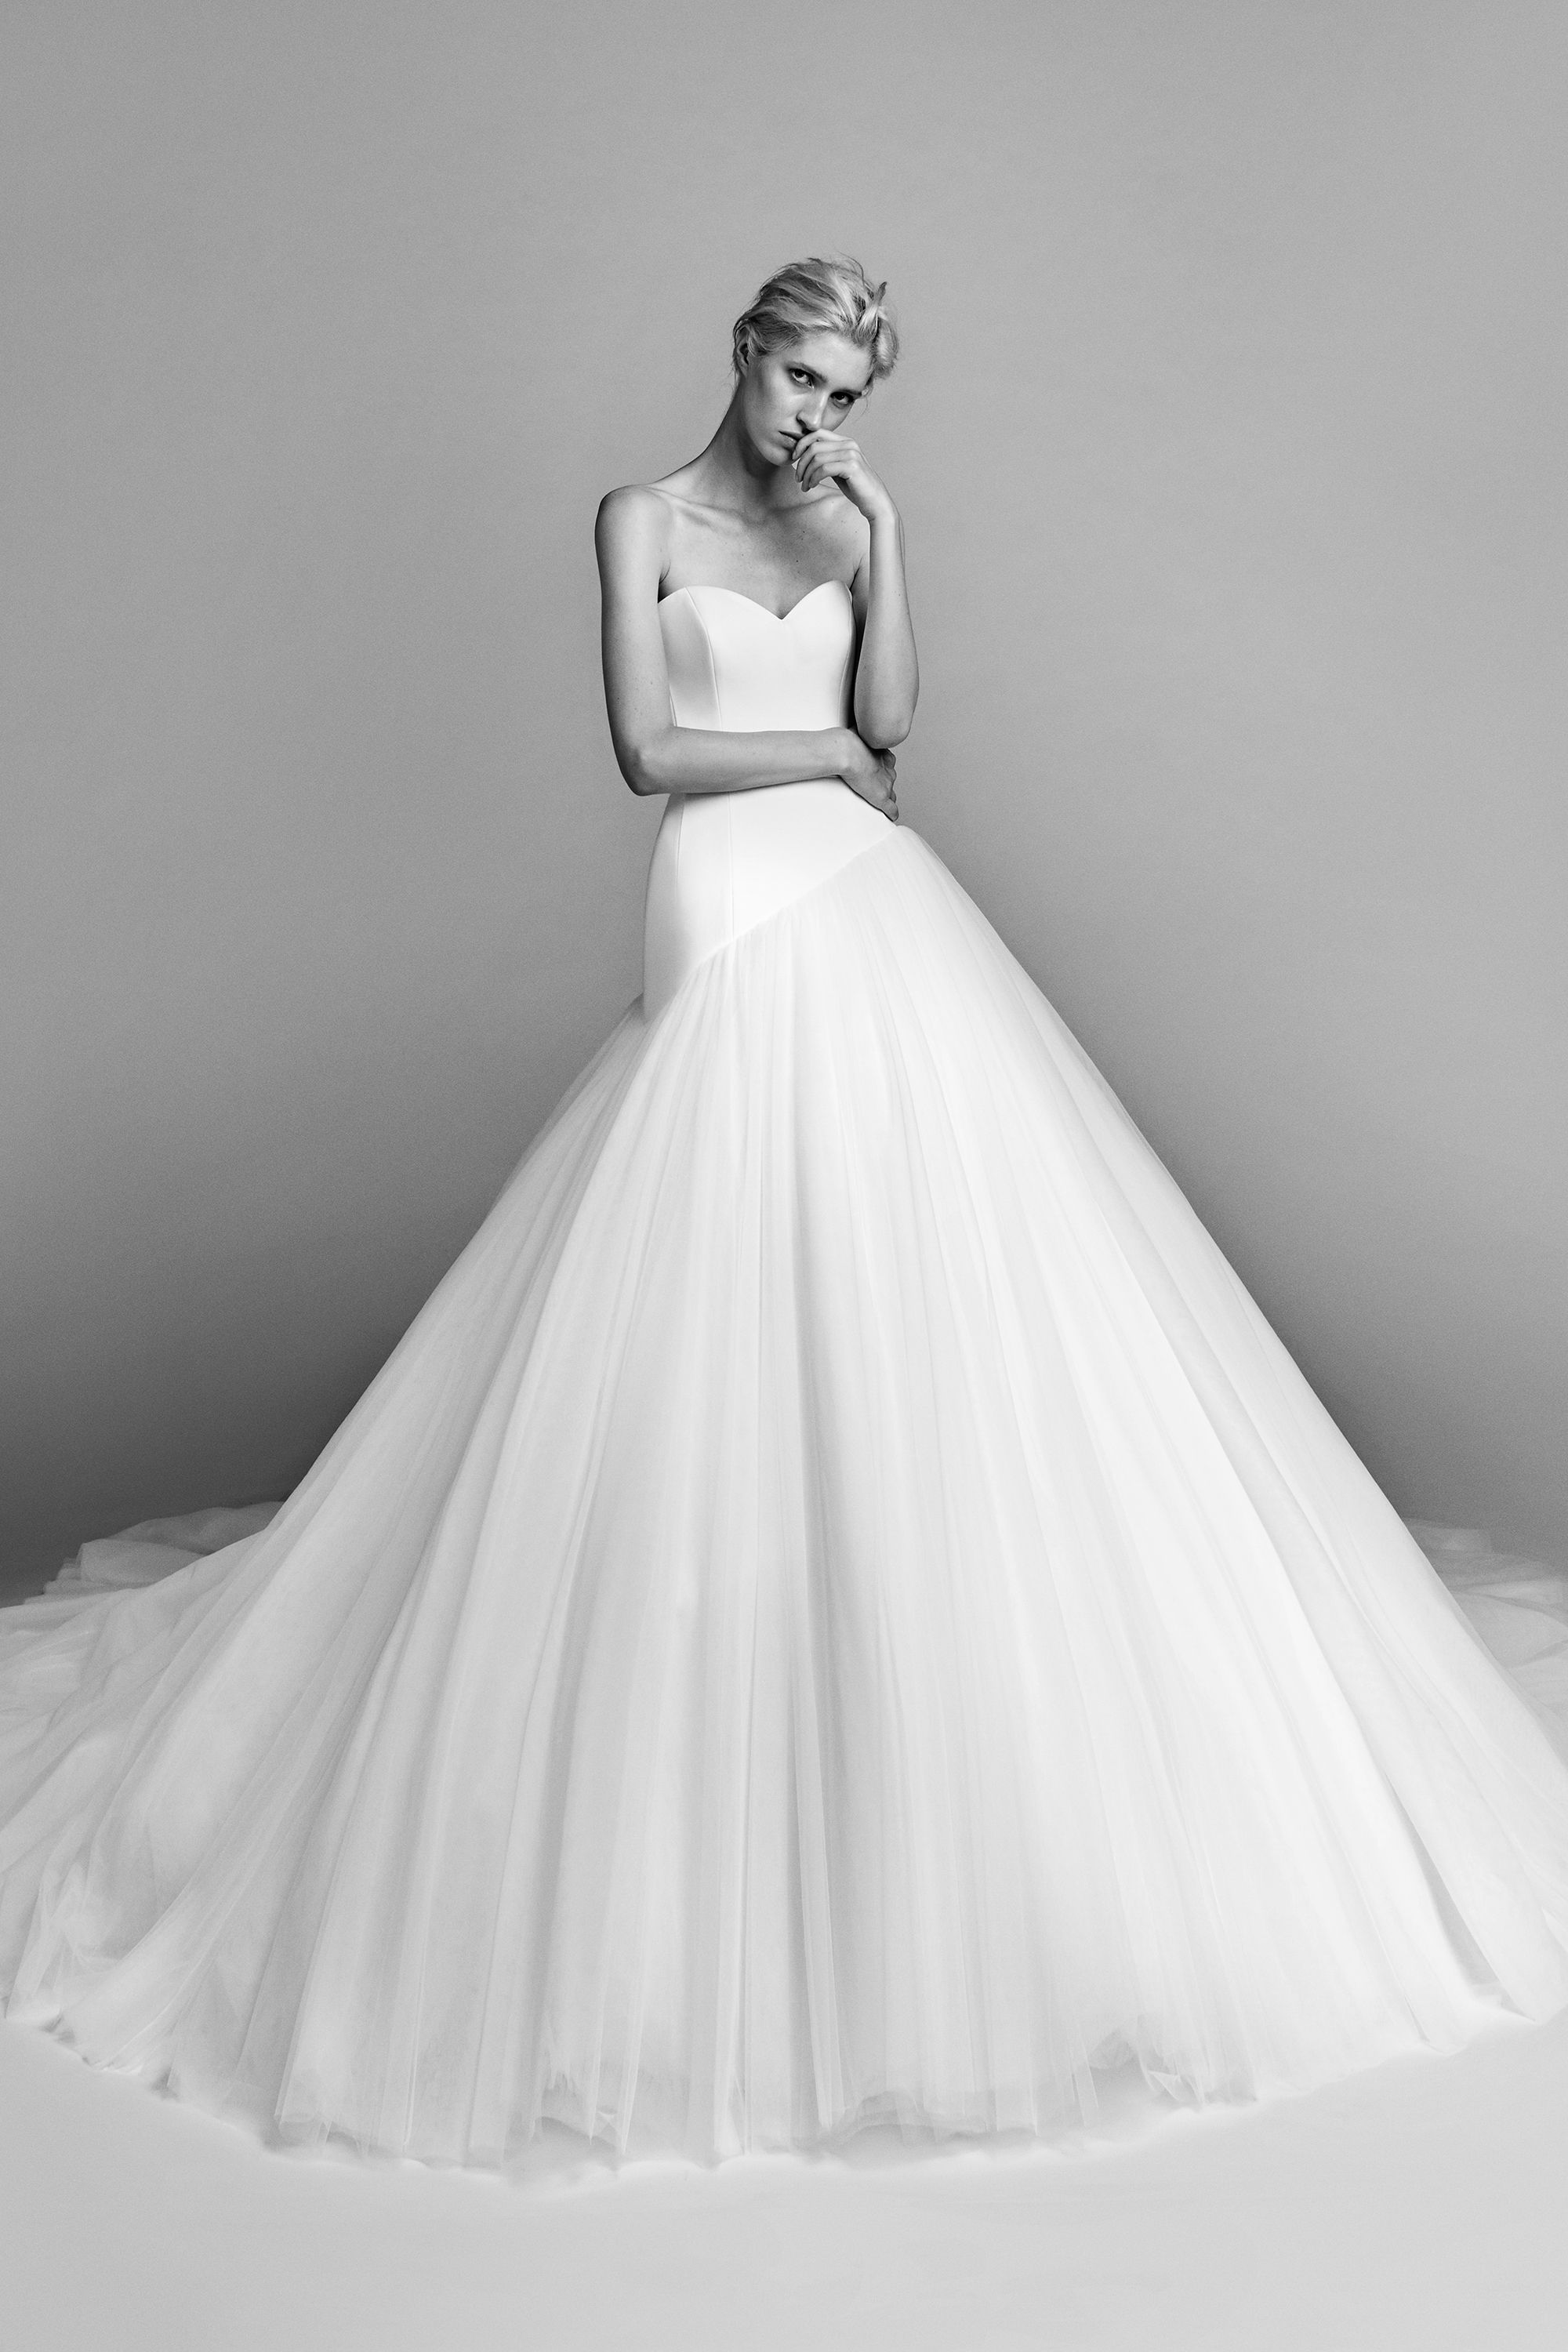 20 viktor rolf fall 2017 wedding dresses see entire viktor 20 viktor rolf fall 2017 wedding dresses see entire viktor rolf bridal collection ombrellifo Image collections